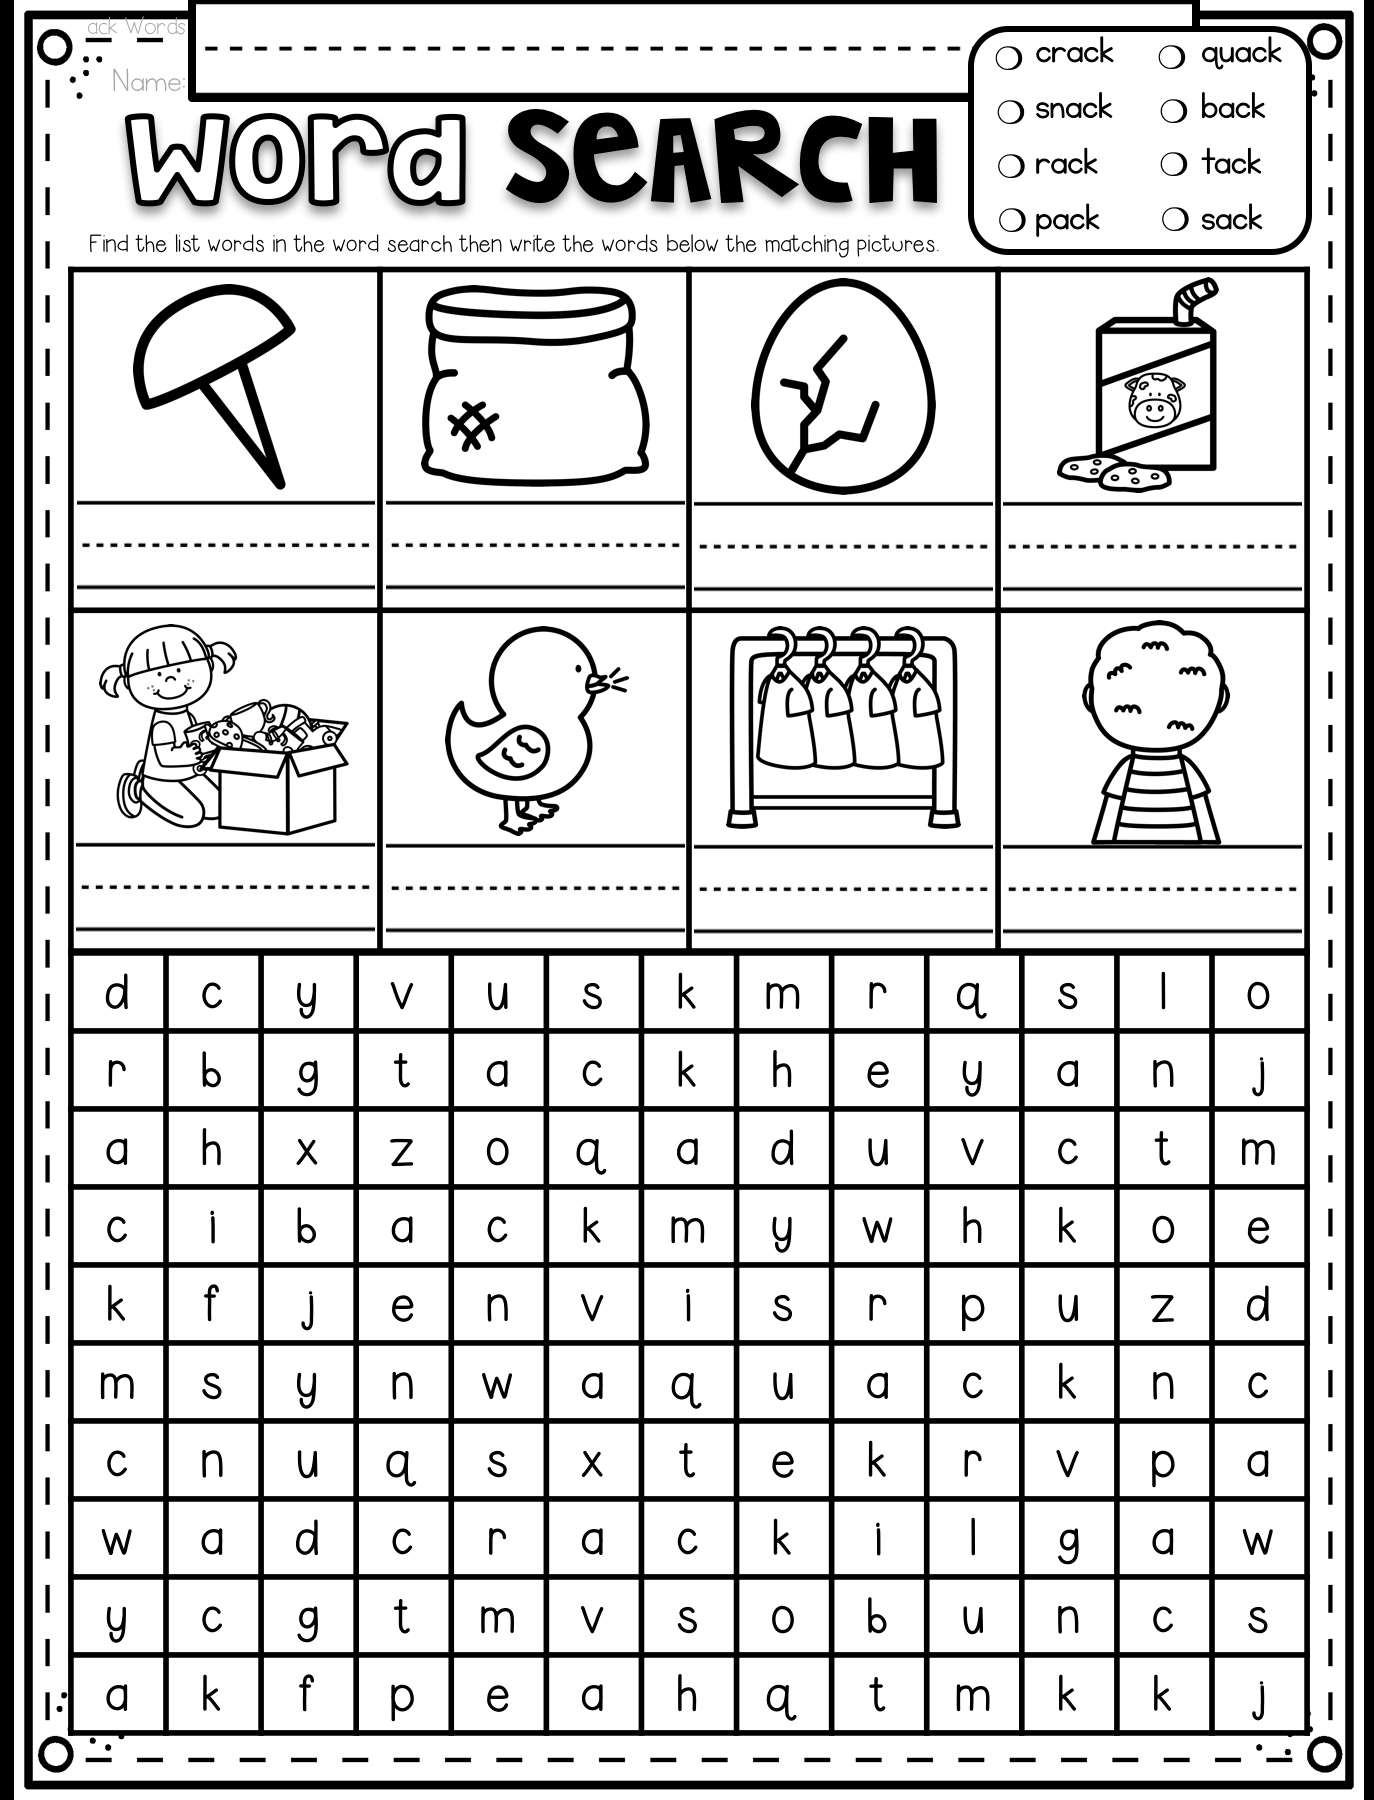 160 Phonics Word Search Puzzles Printables You Can Use For Rotations Homework Morning Work And More Cvc Words Cvce Wor Phonics Words Phonics Digraph Words [ 1800 x 1374 Pixel ]